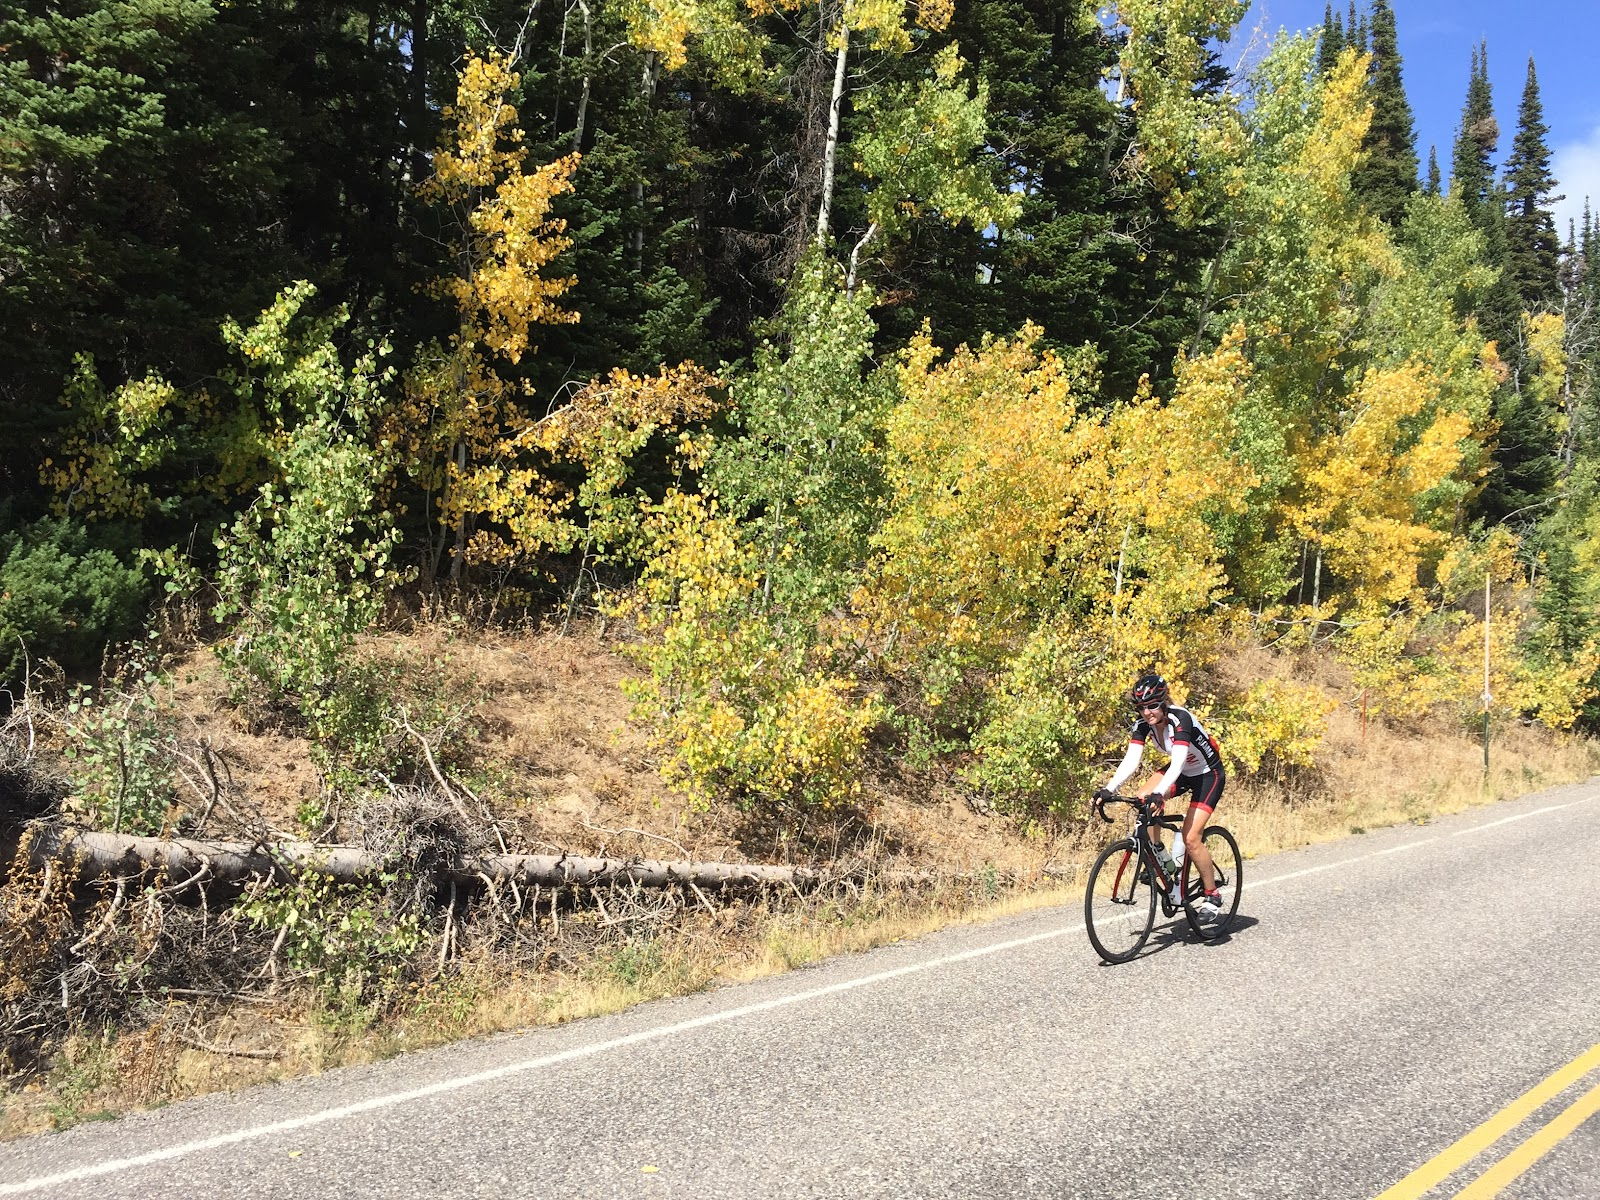 Climbing Mt. Harrison by bike - Stacy Topping cycling up to the road